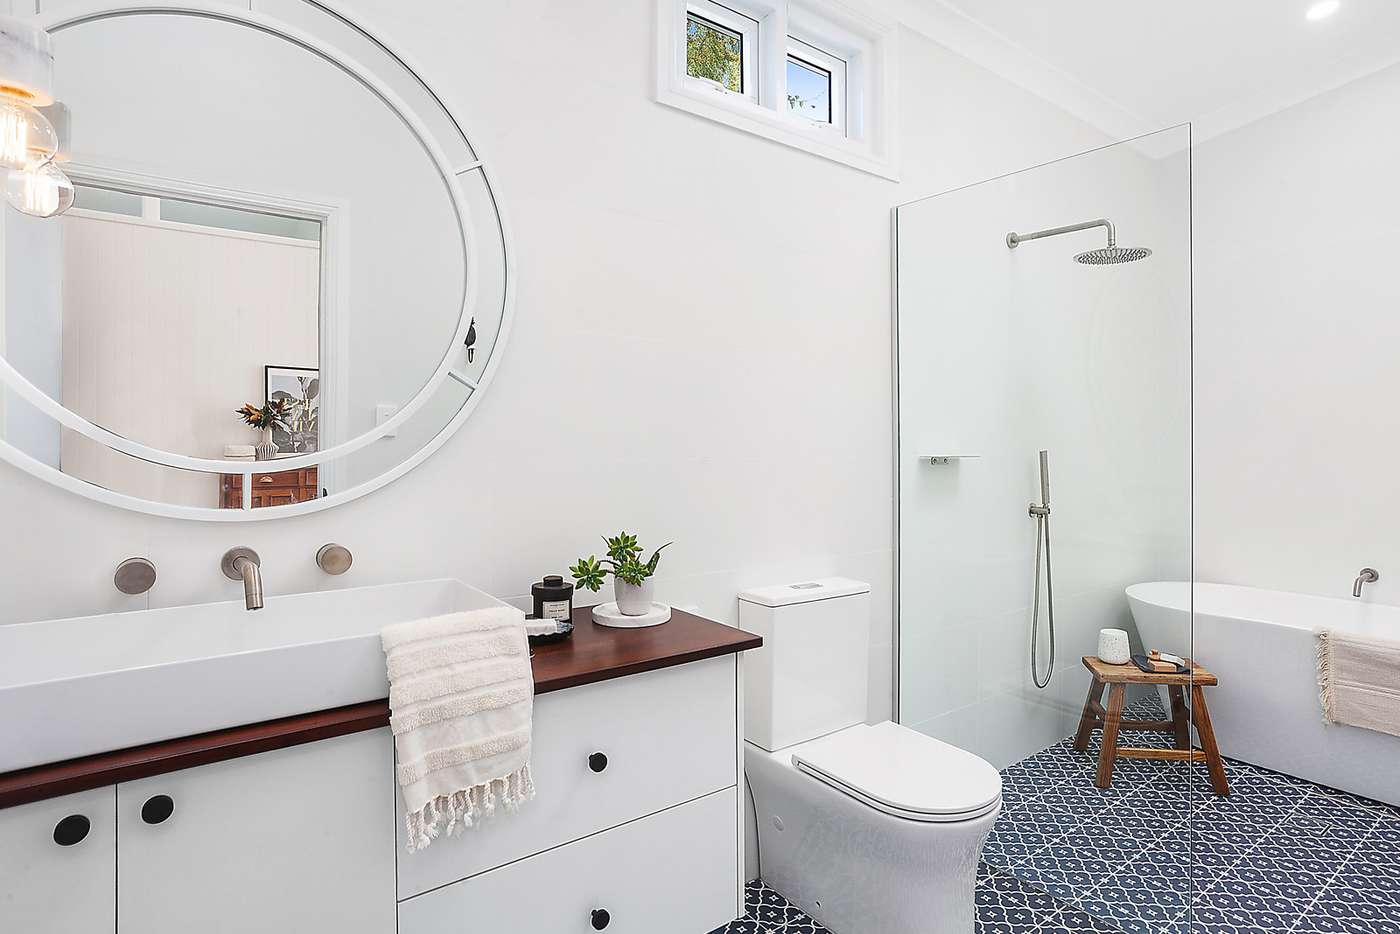 Sixth view of Homely house listing, 11 Wyalong Road, Blackwall NSW 2256